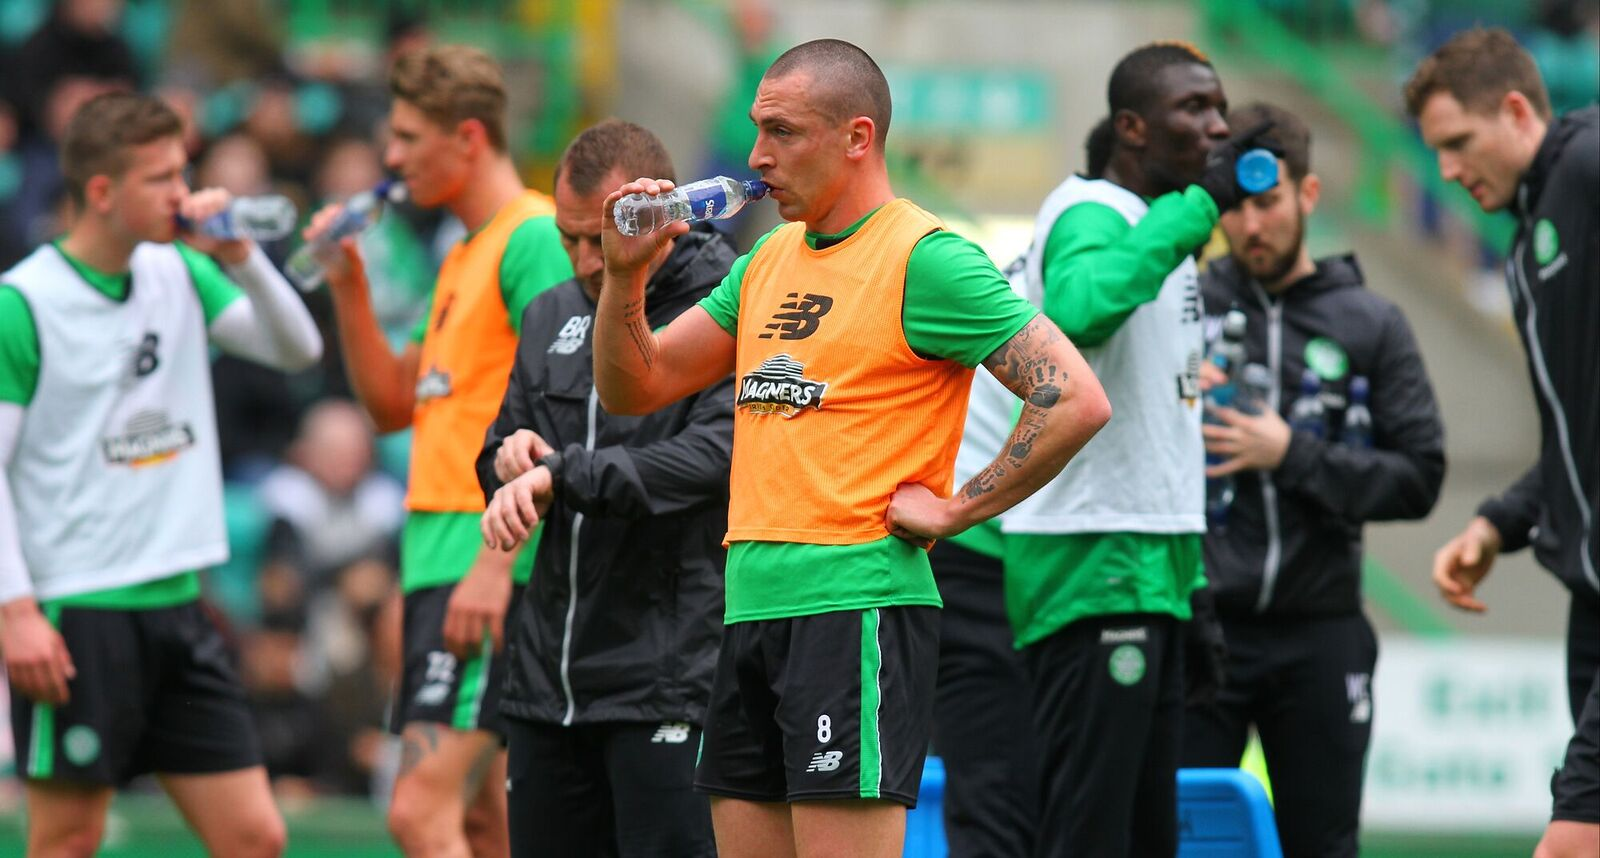 'We Want Justice For Scott Brown,' Rodgers